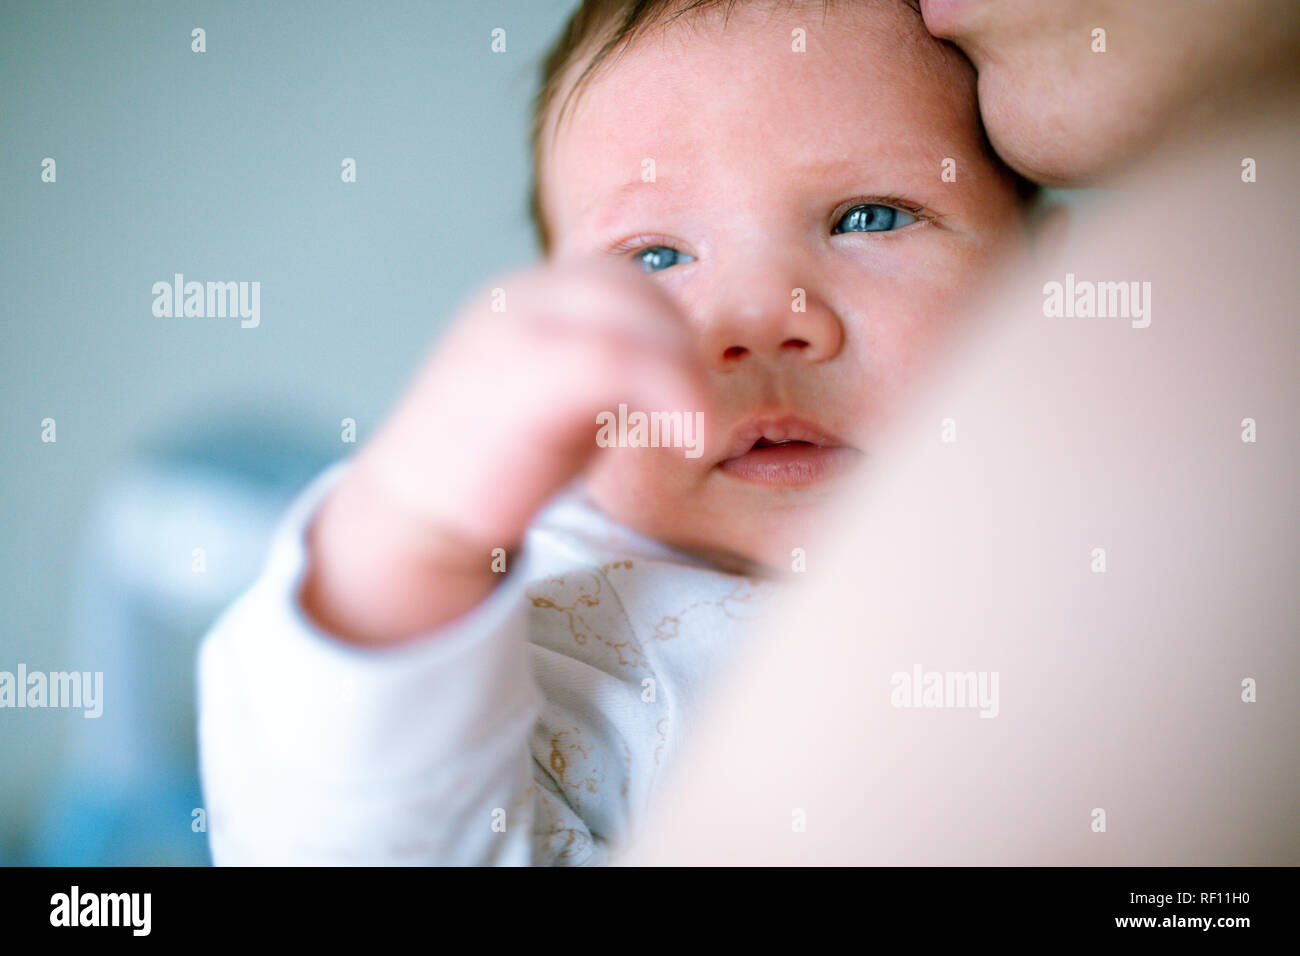 Young mother hugging her newborn child. Mom nursing baby. Family at home. Love, trust and tenderness concept. Stock Photo